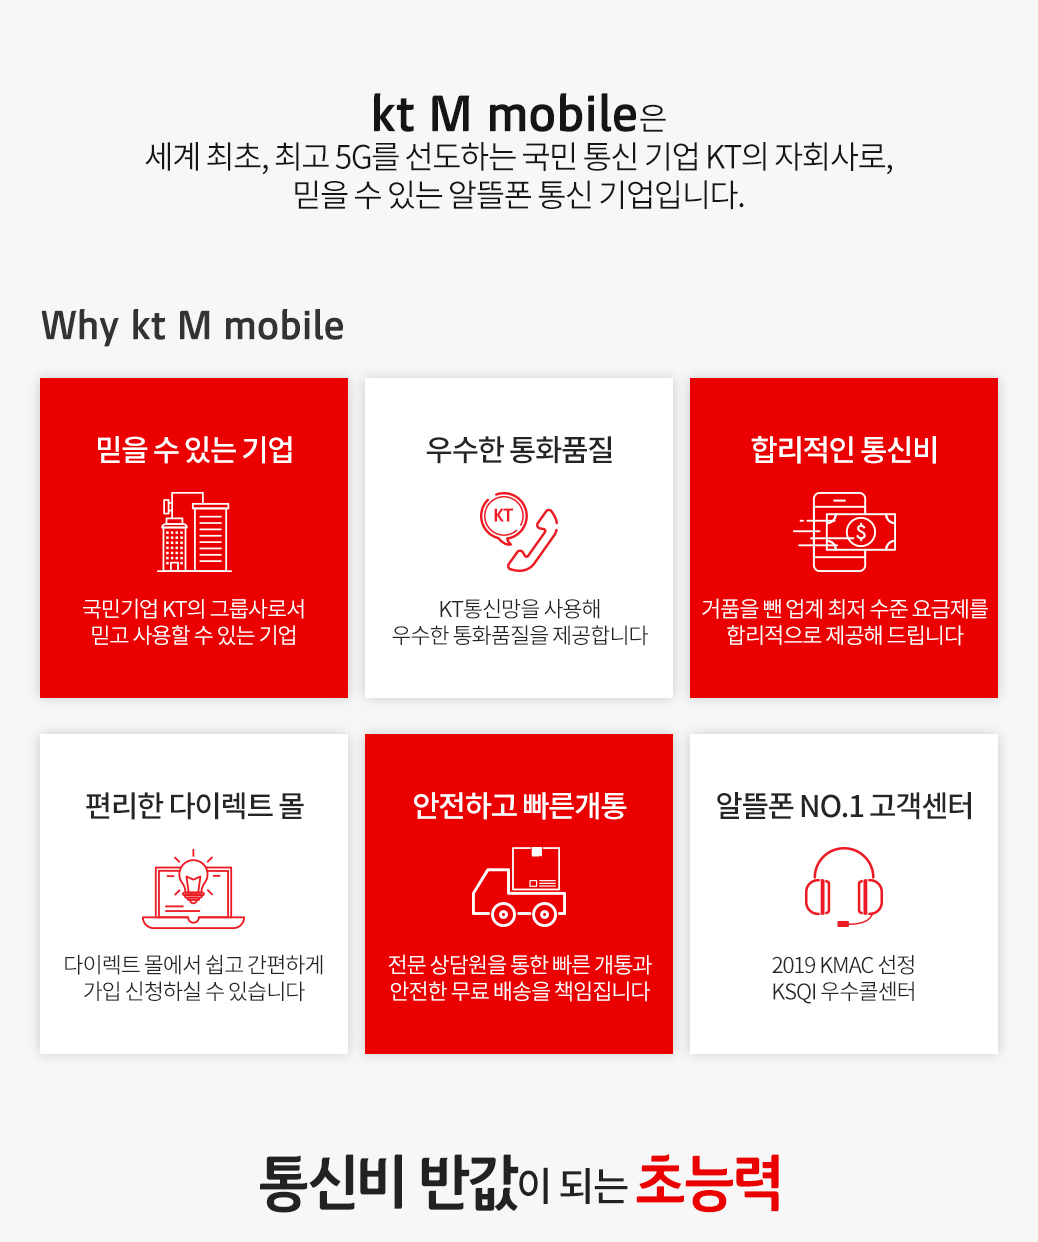 Why kt M mobile